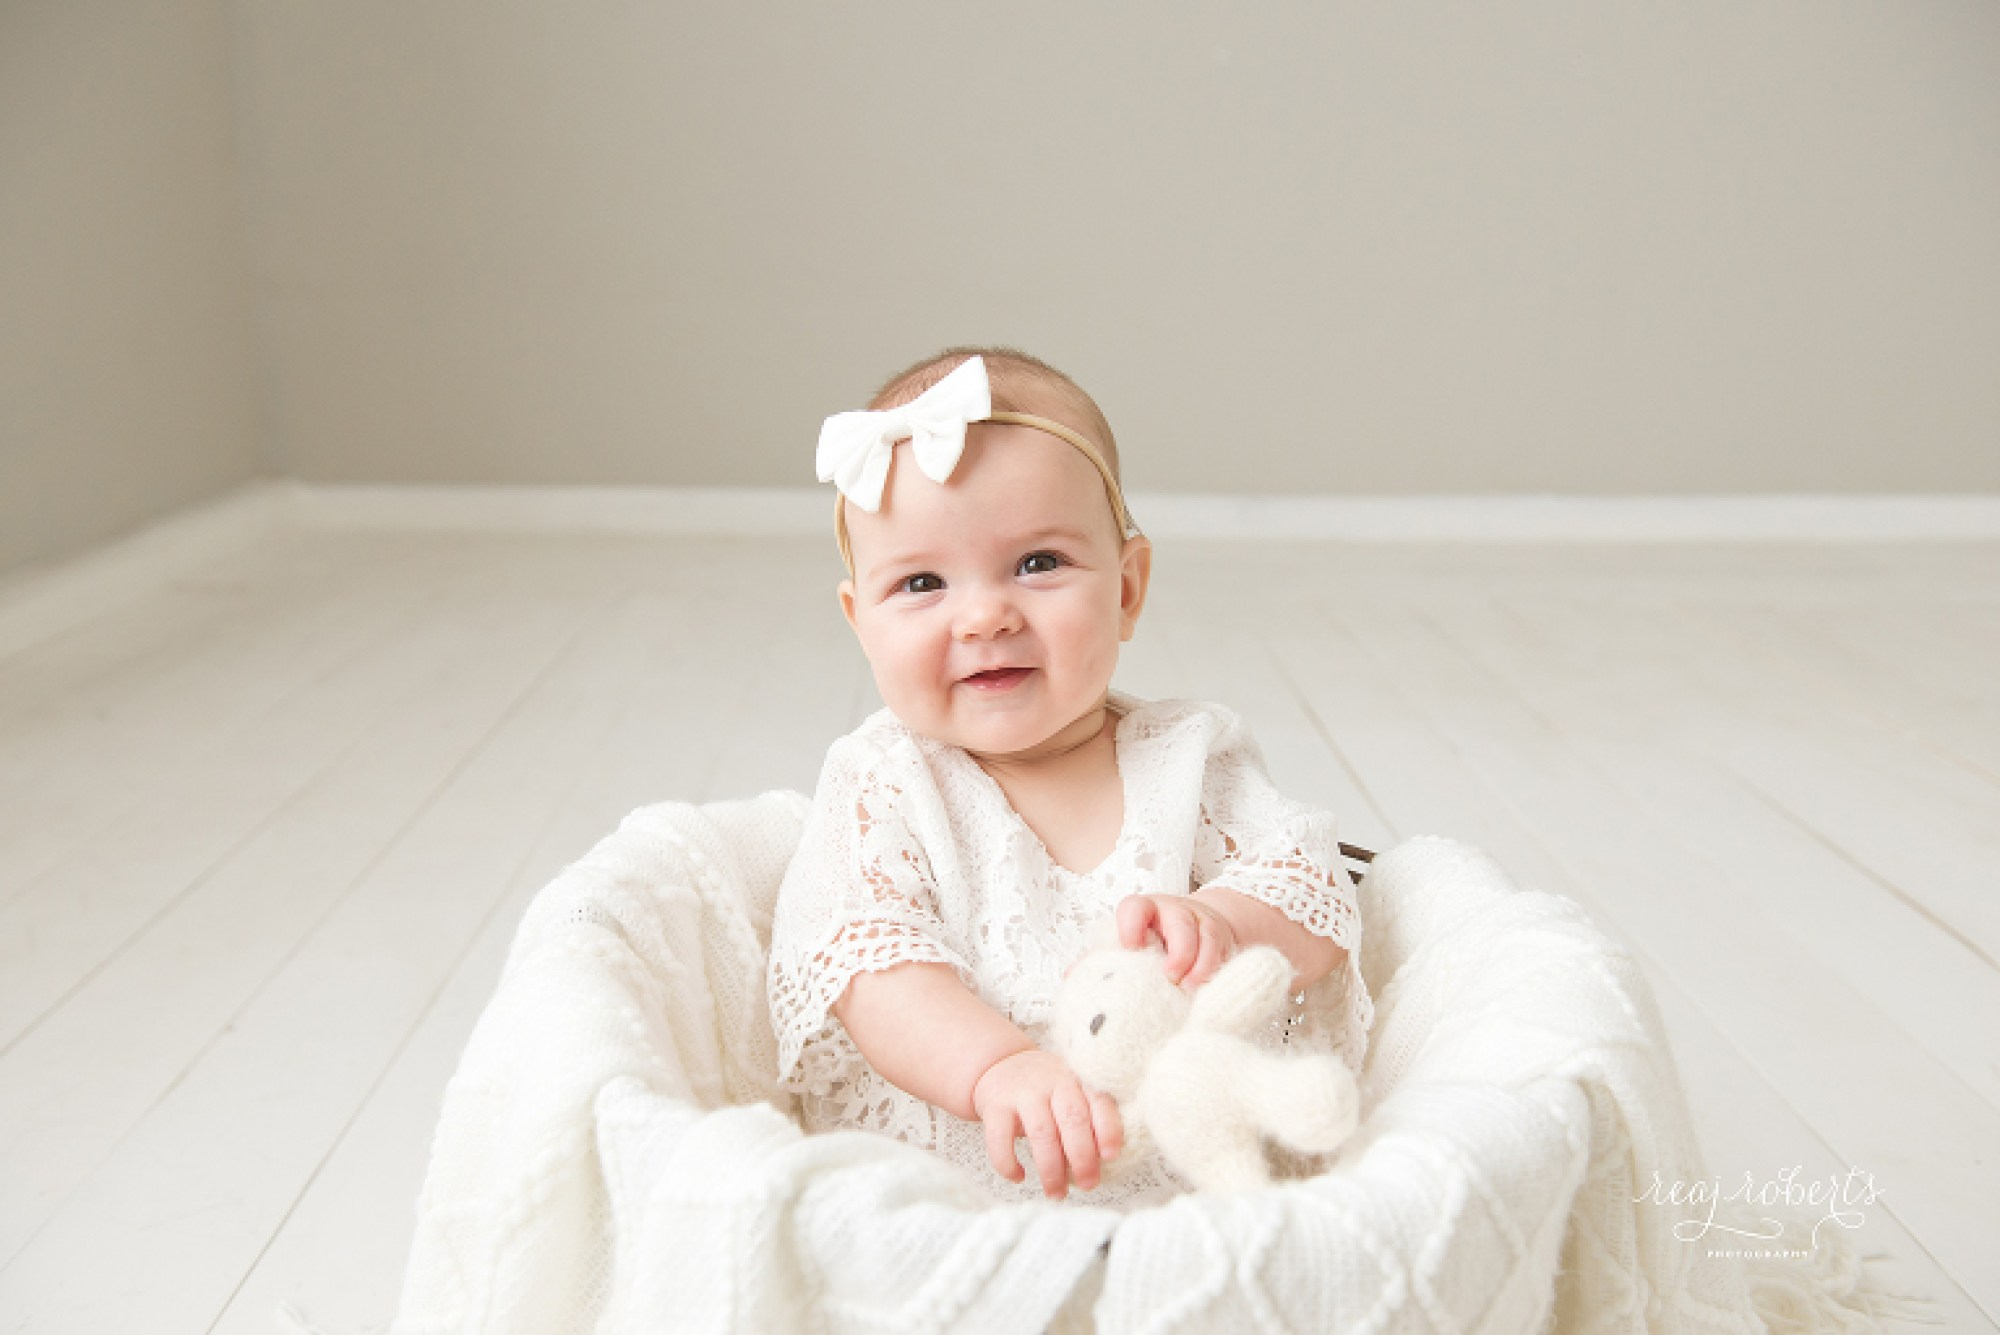 Daphne's Sitter Session | Chandler Baby Photographer - Reaj